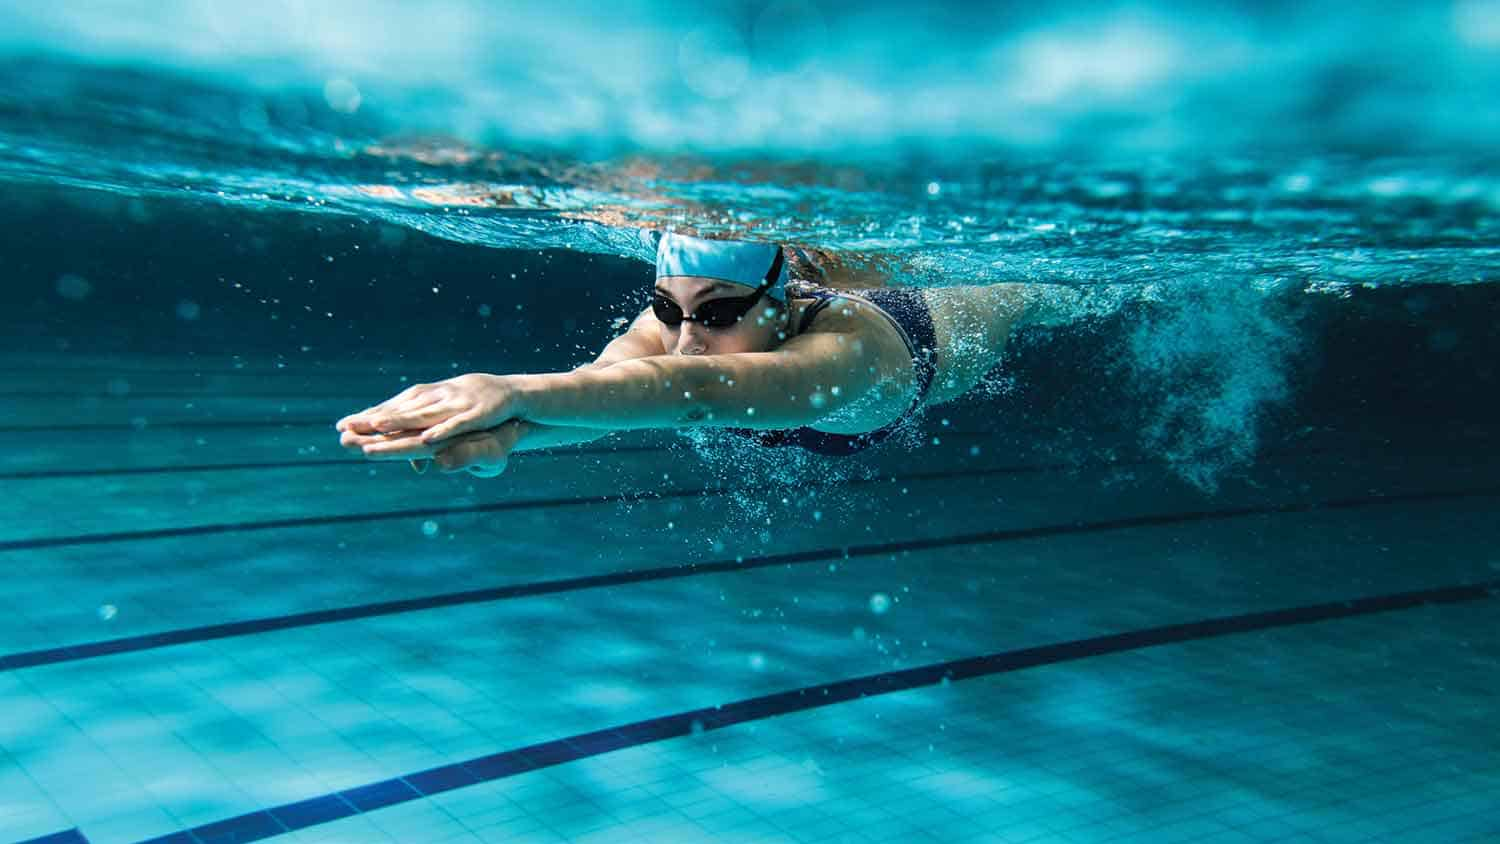 Swimmer under water, pushing off or diving in.